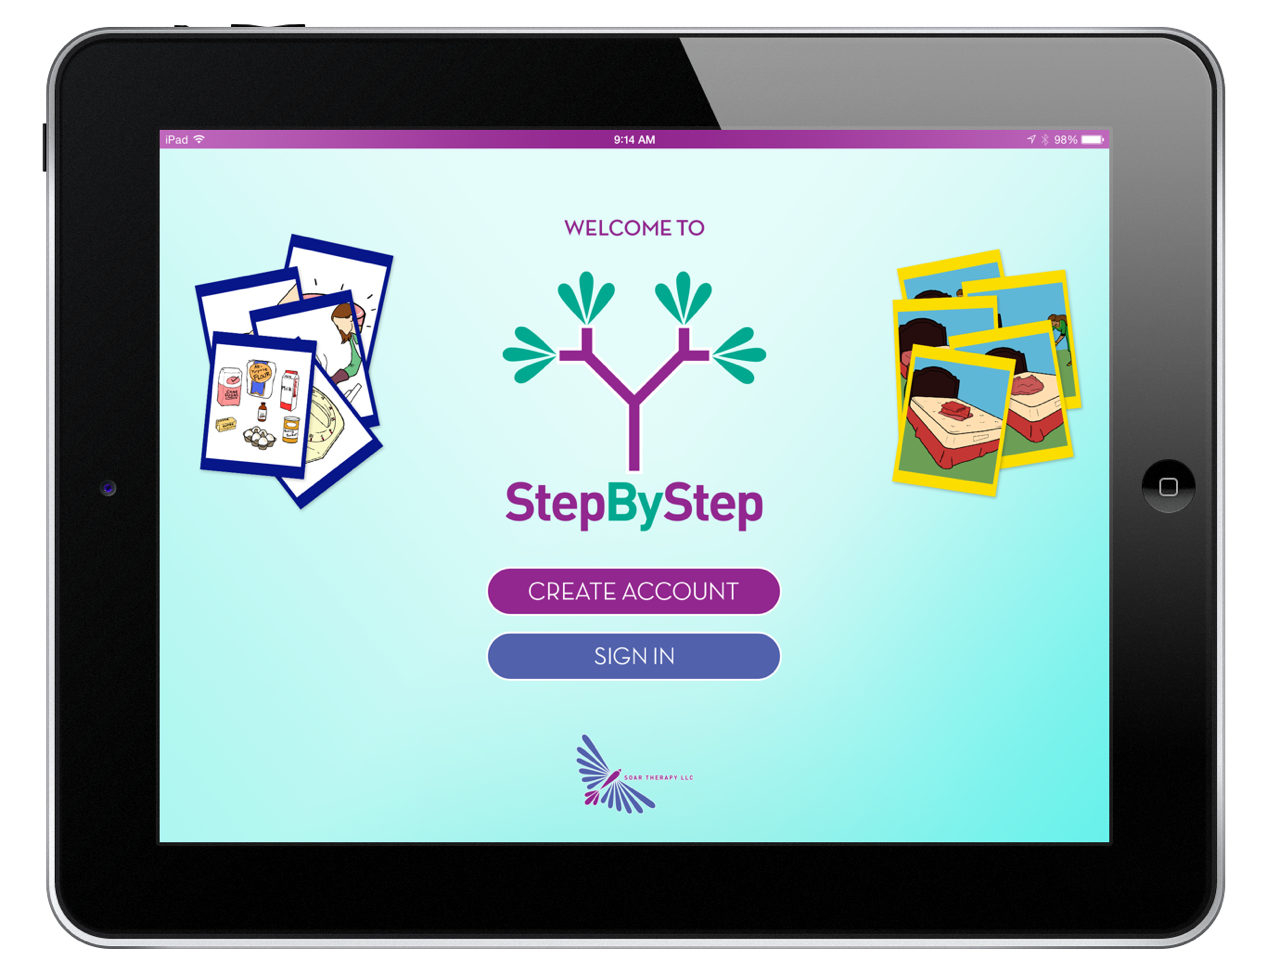 StepByStep Pro from SOAR Therapy